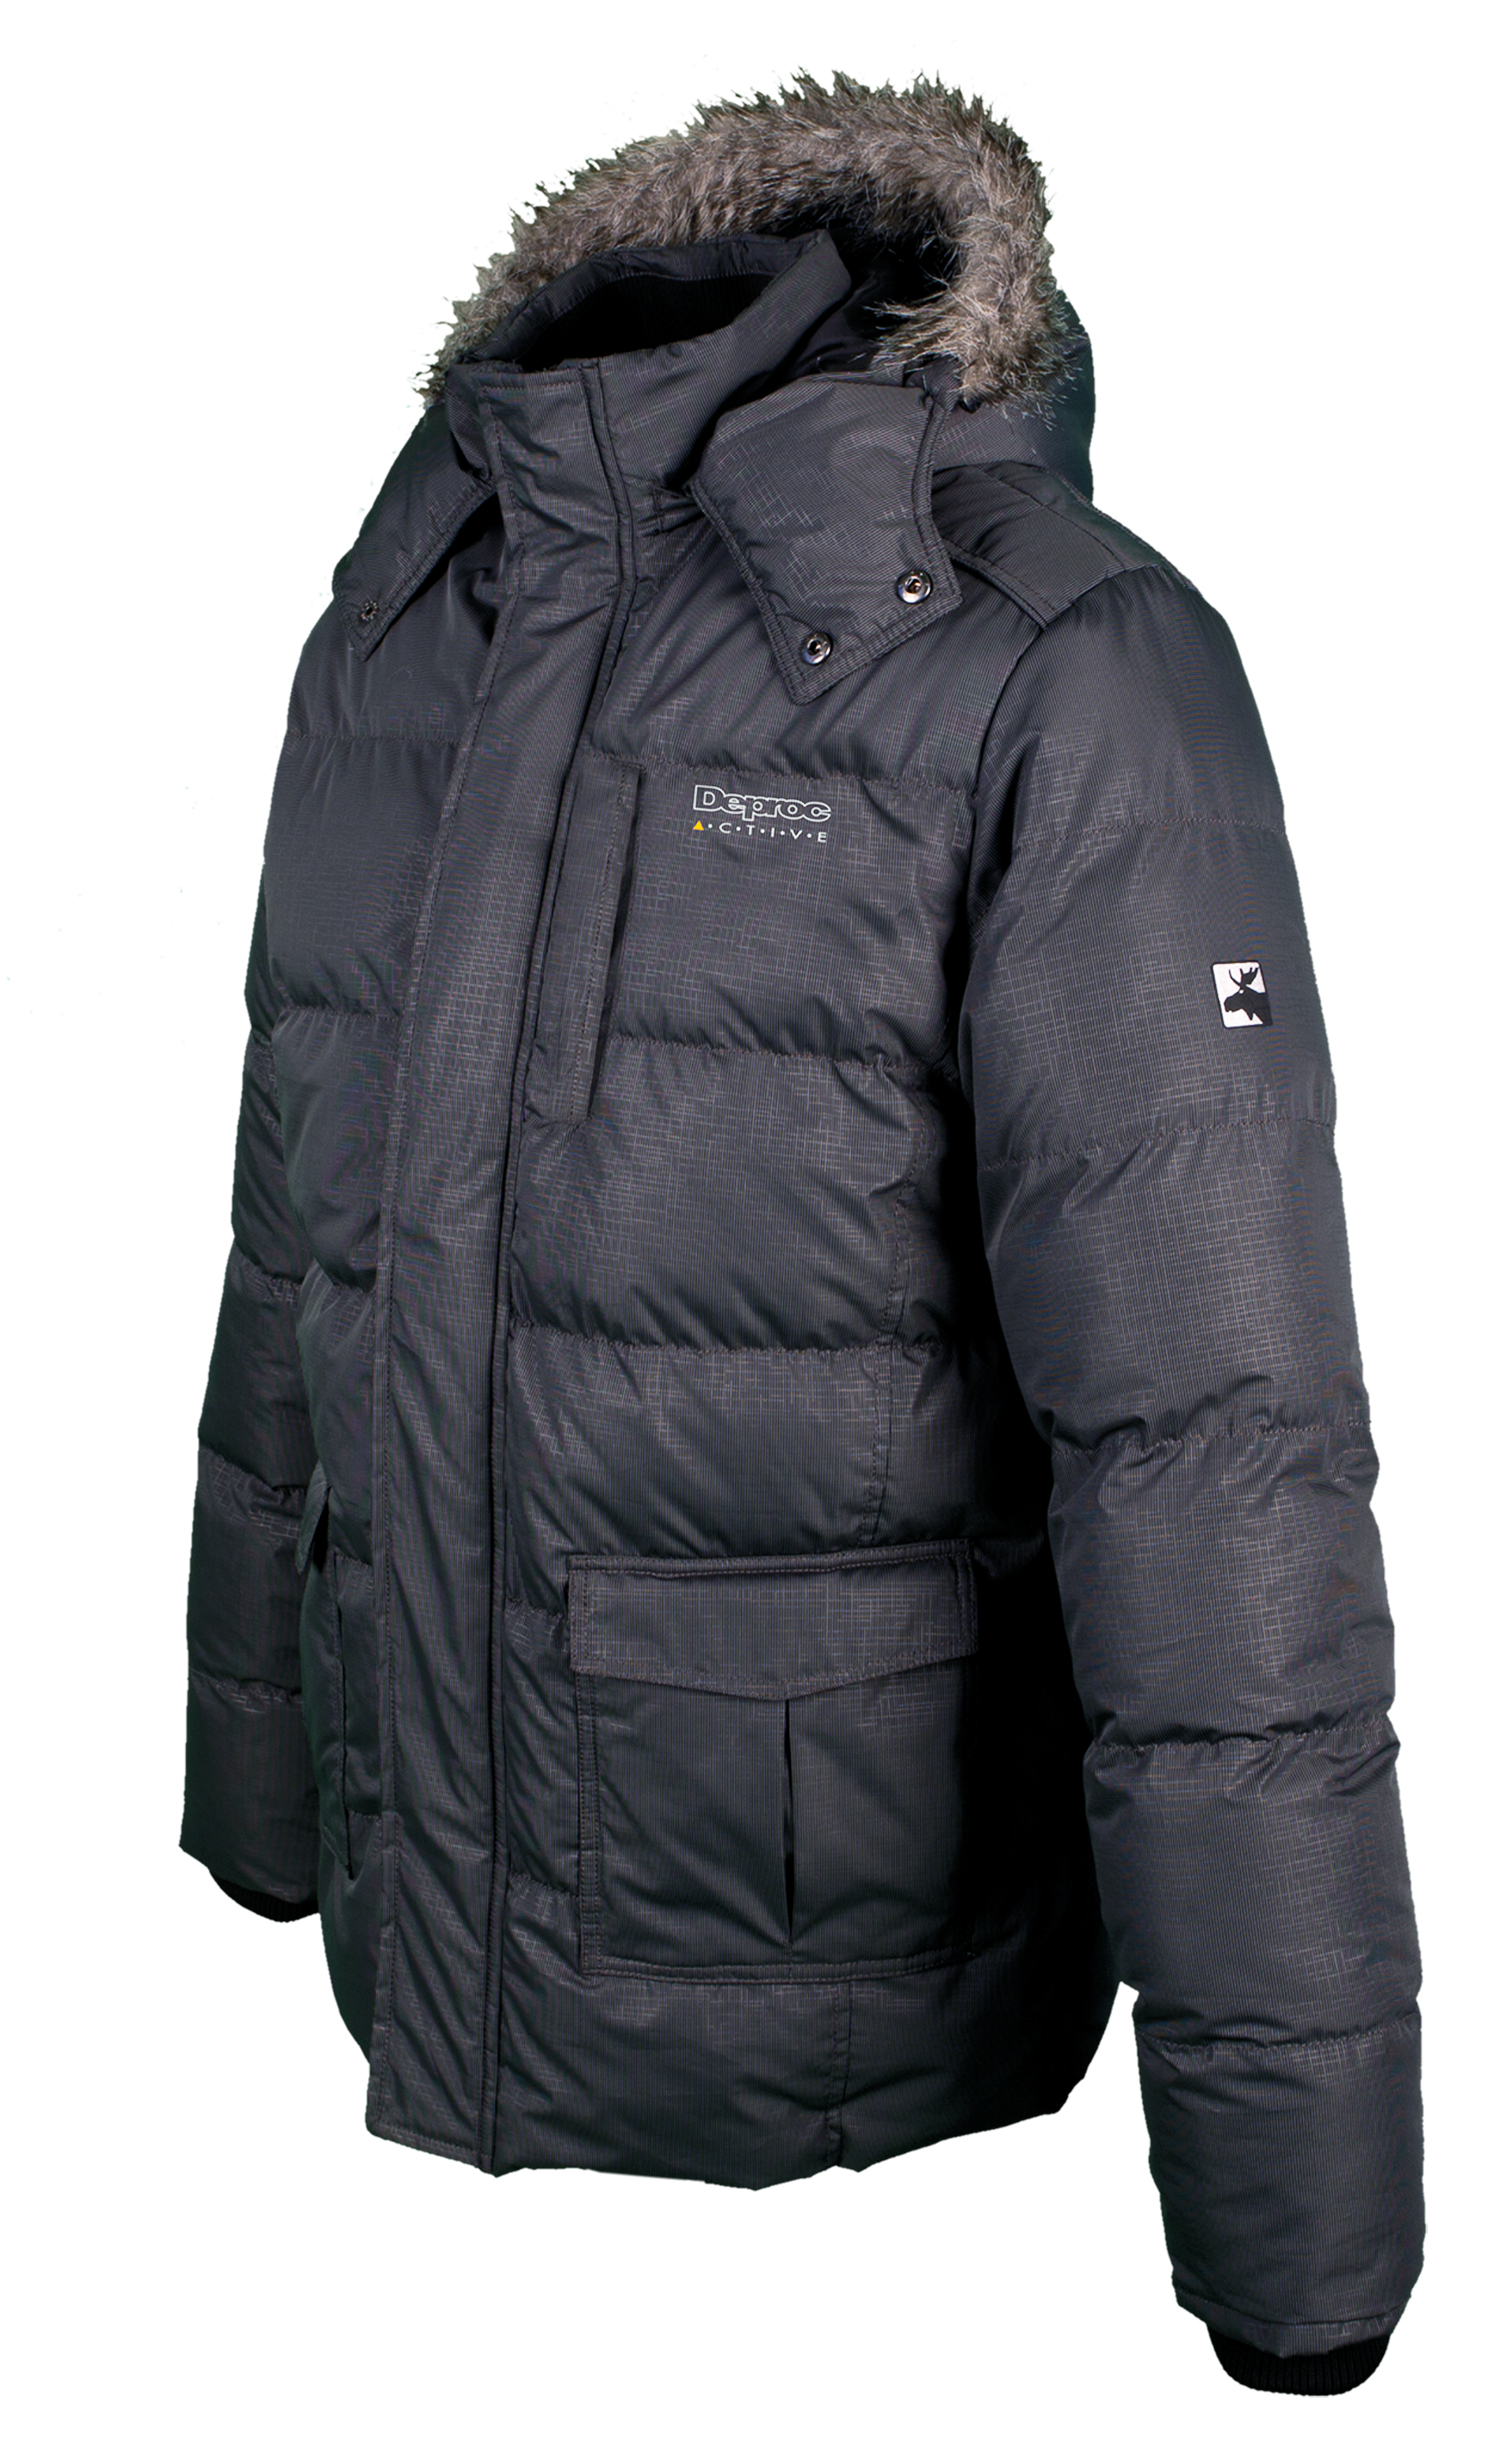 DEPROC Winterjacke & Winter Parka Herren  Waddington Men  Farbe: anthrazit  Größe: S